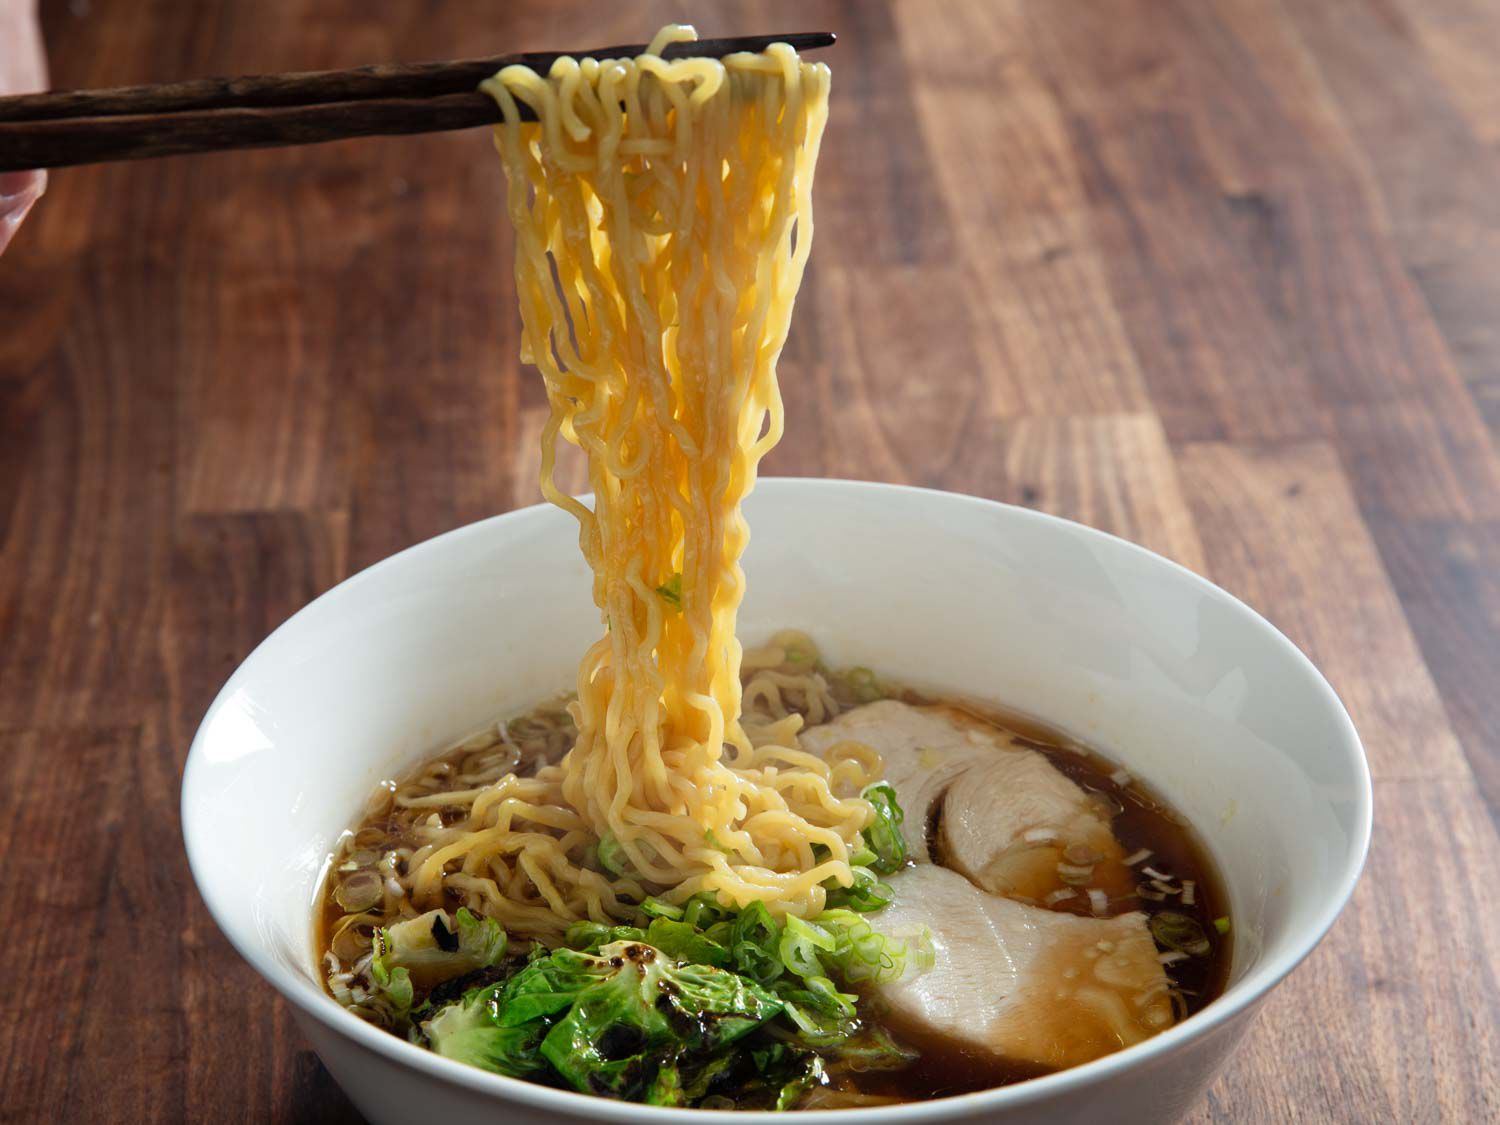 Noodles being lifted out of bowl of turkey ramen